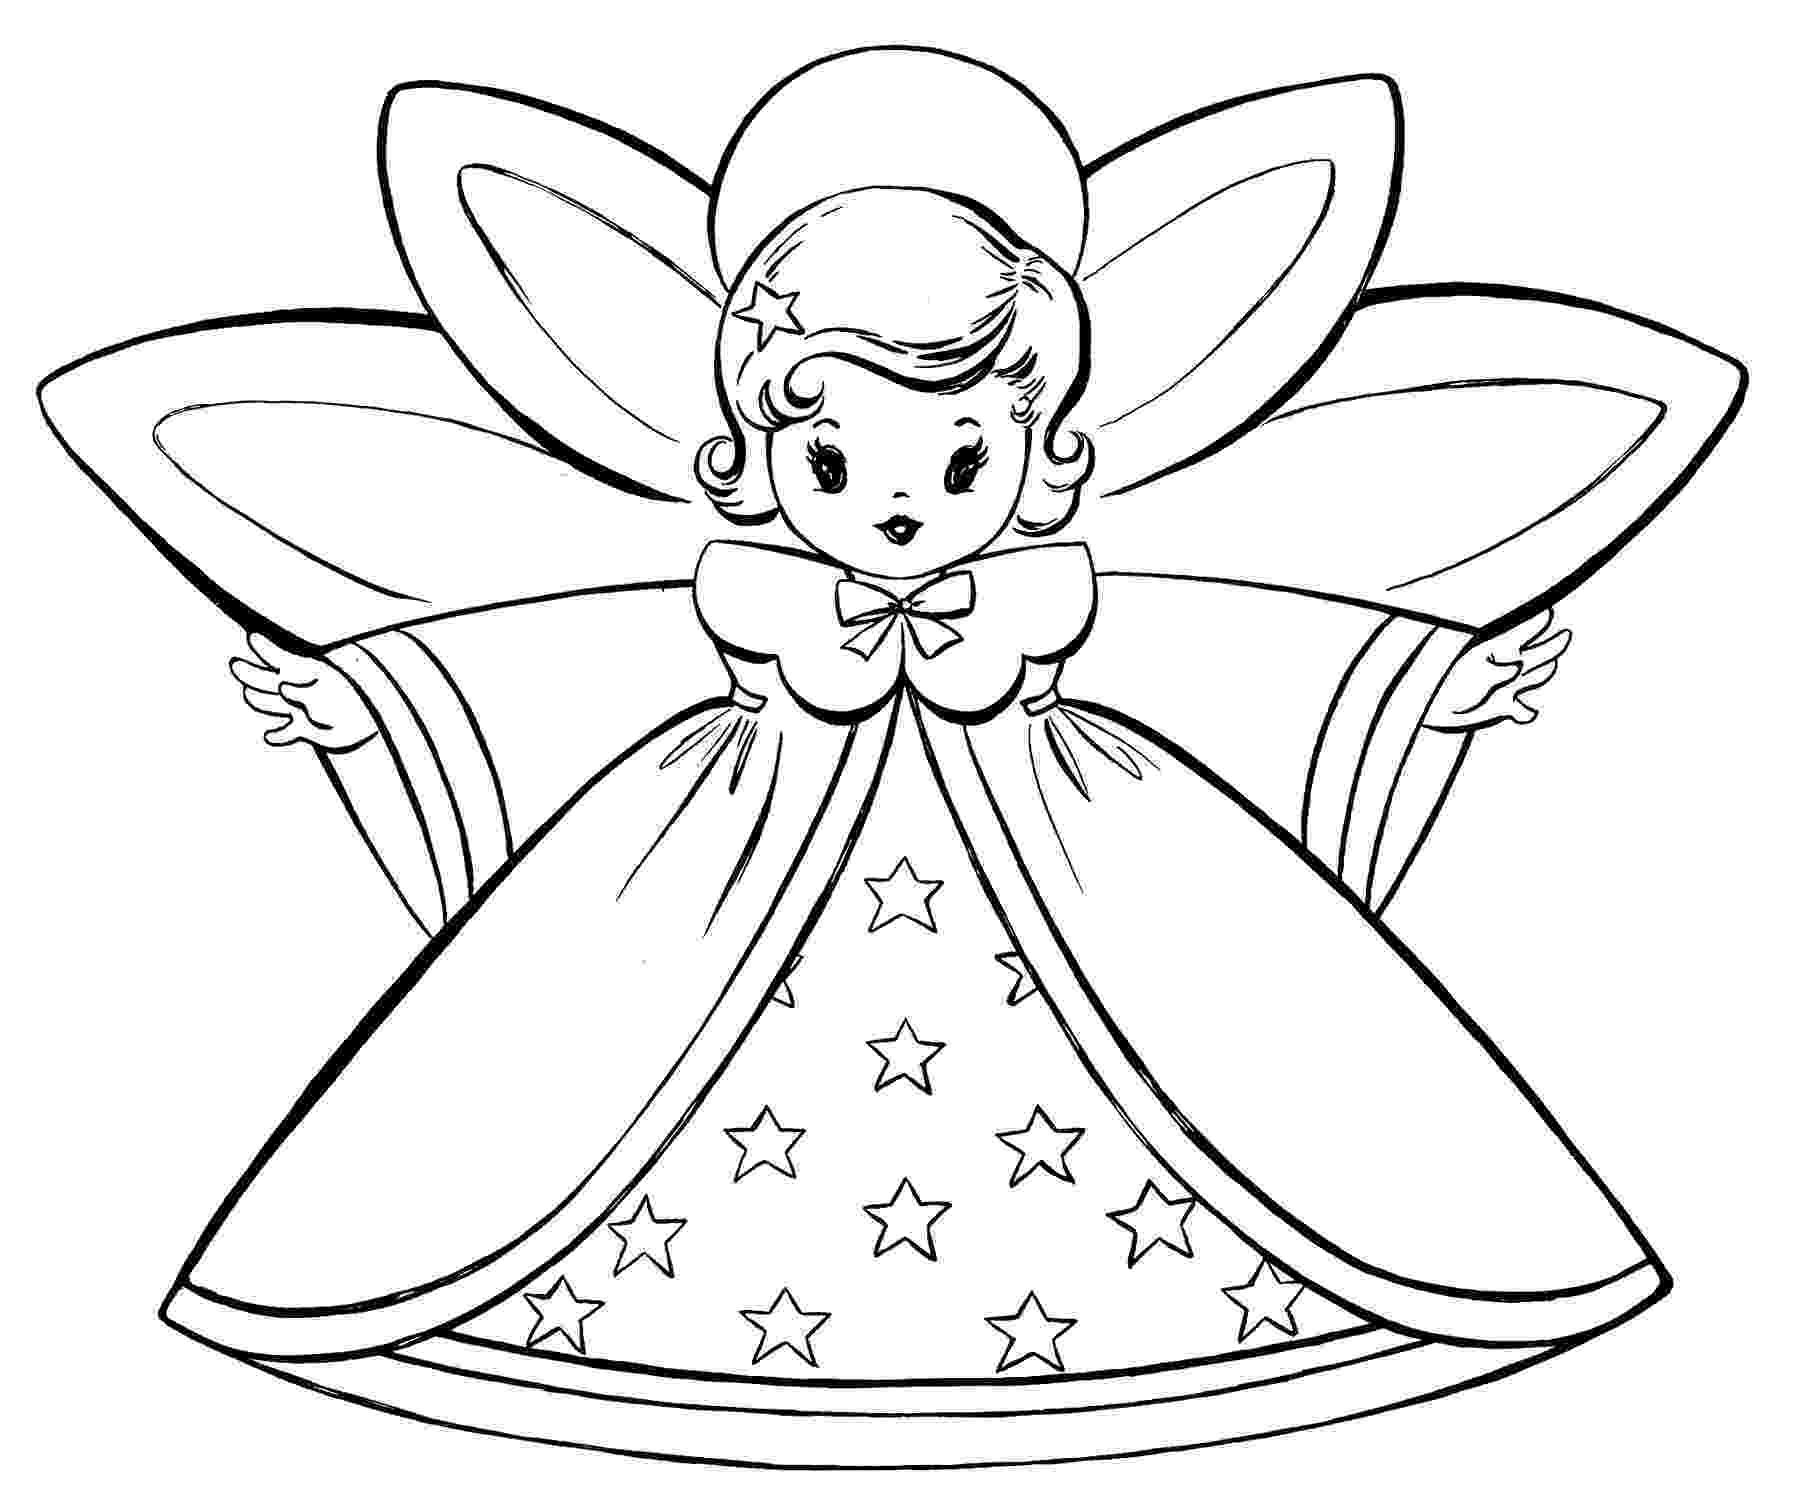 chirstmas coloring pages free christmas coloring pages retro angels the chirstmas coloring pages